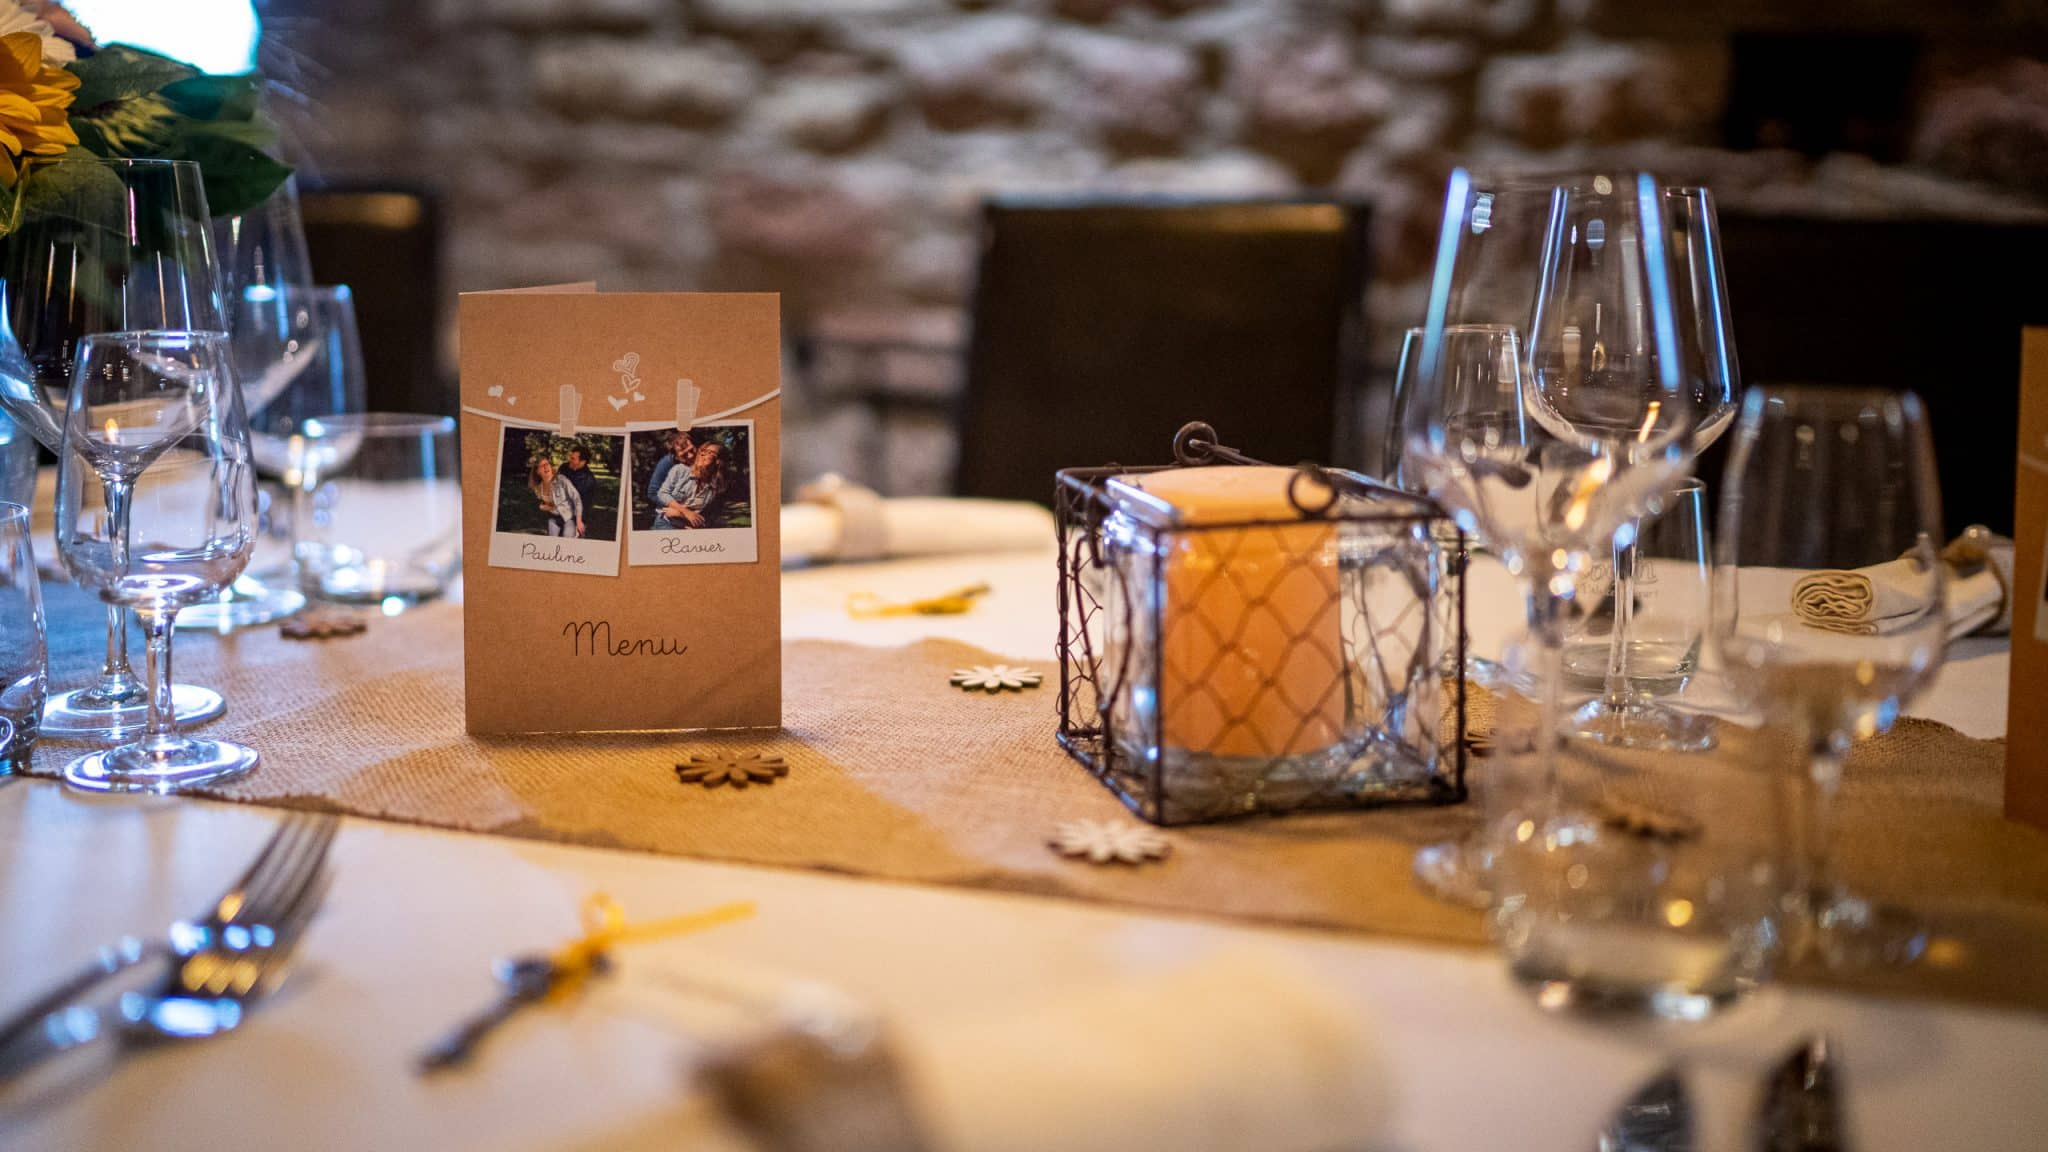 Menu maraige table restaurant presentation photo couple amoureux seance engagement bougie fleurs